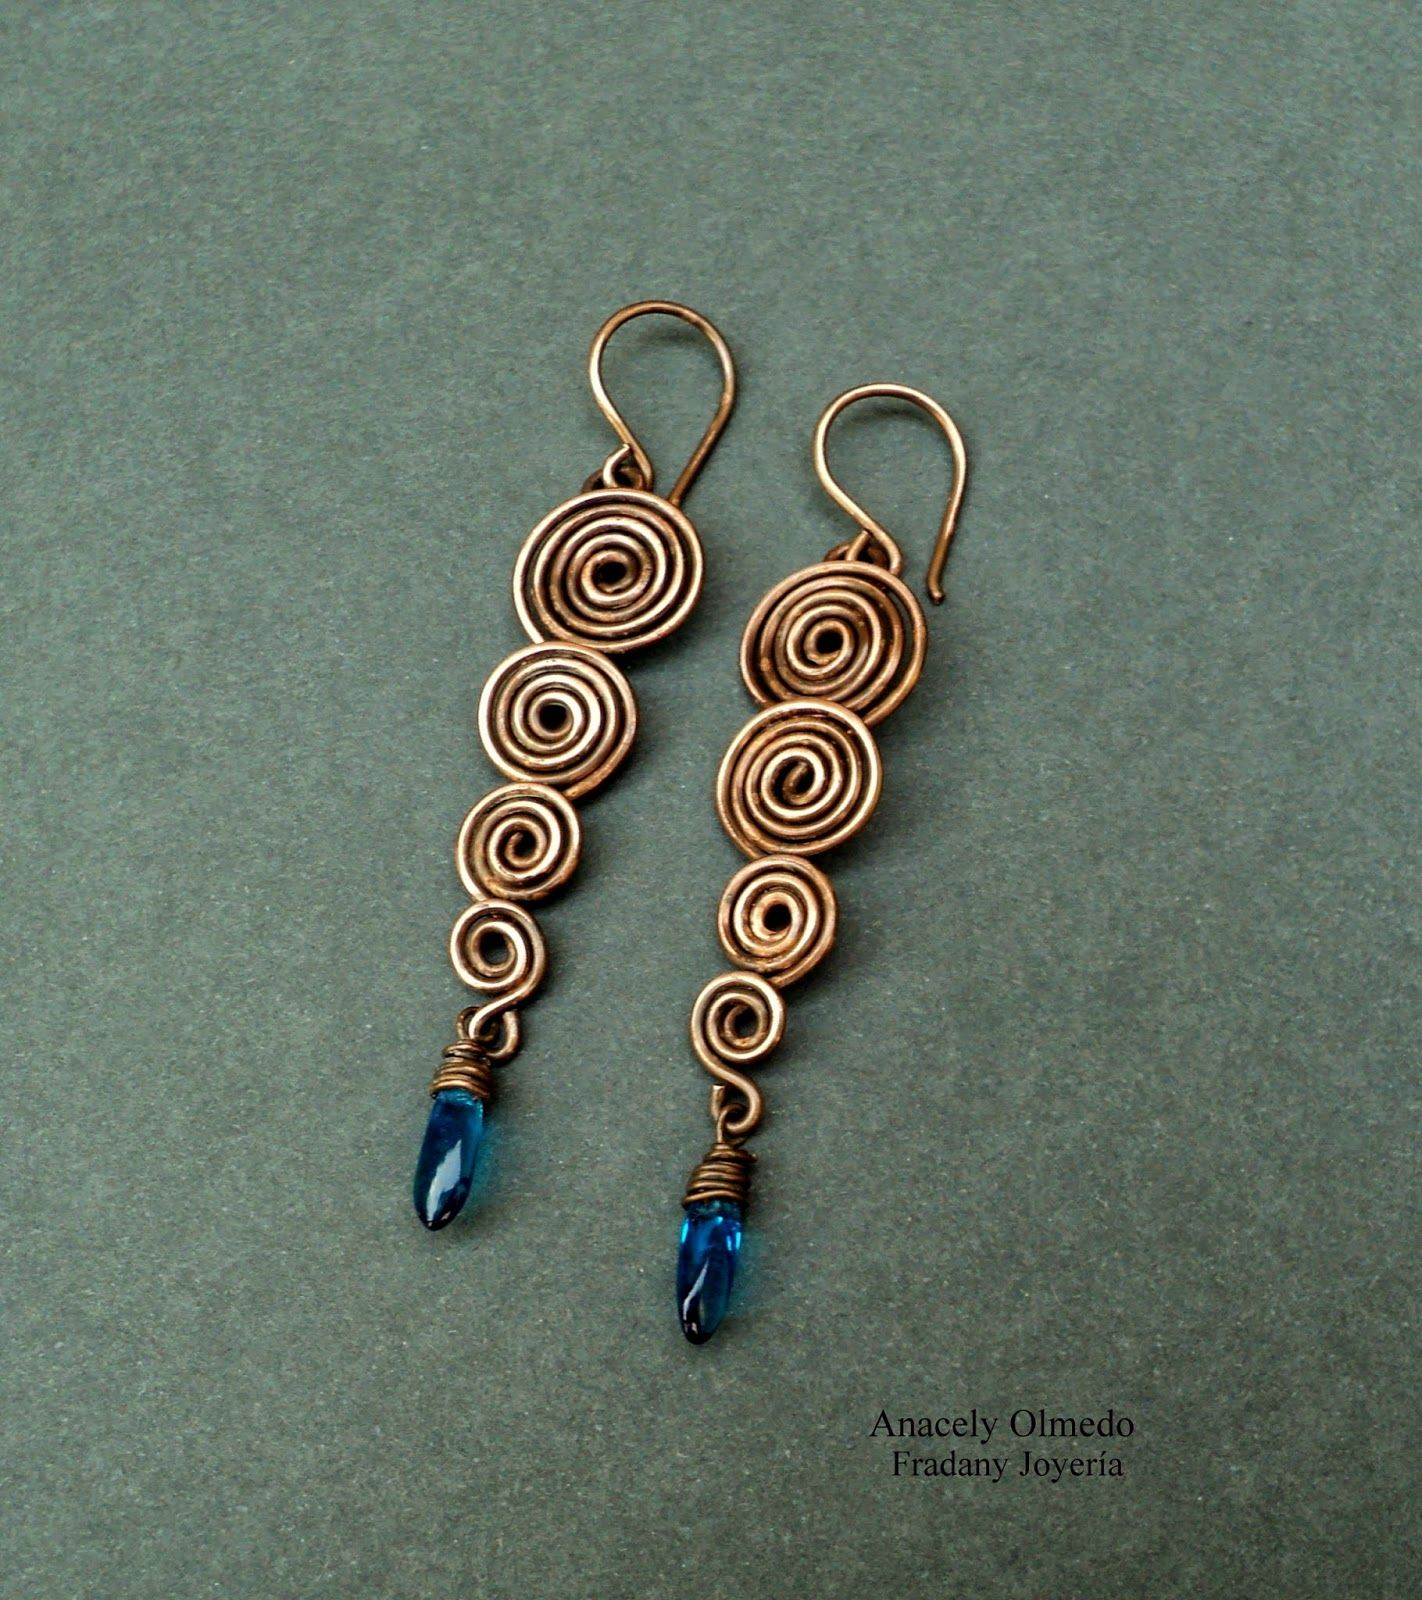 Fradany : free wire spiral earring tutorial | Free Jewelry Making ...